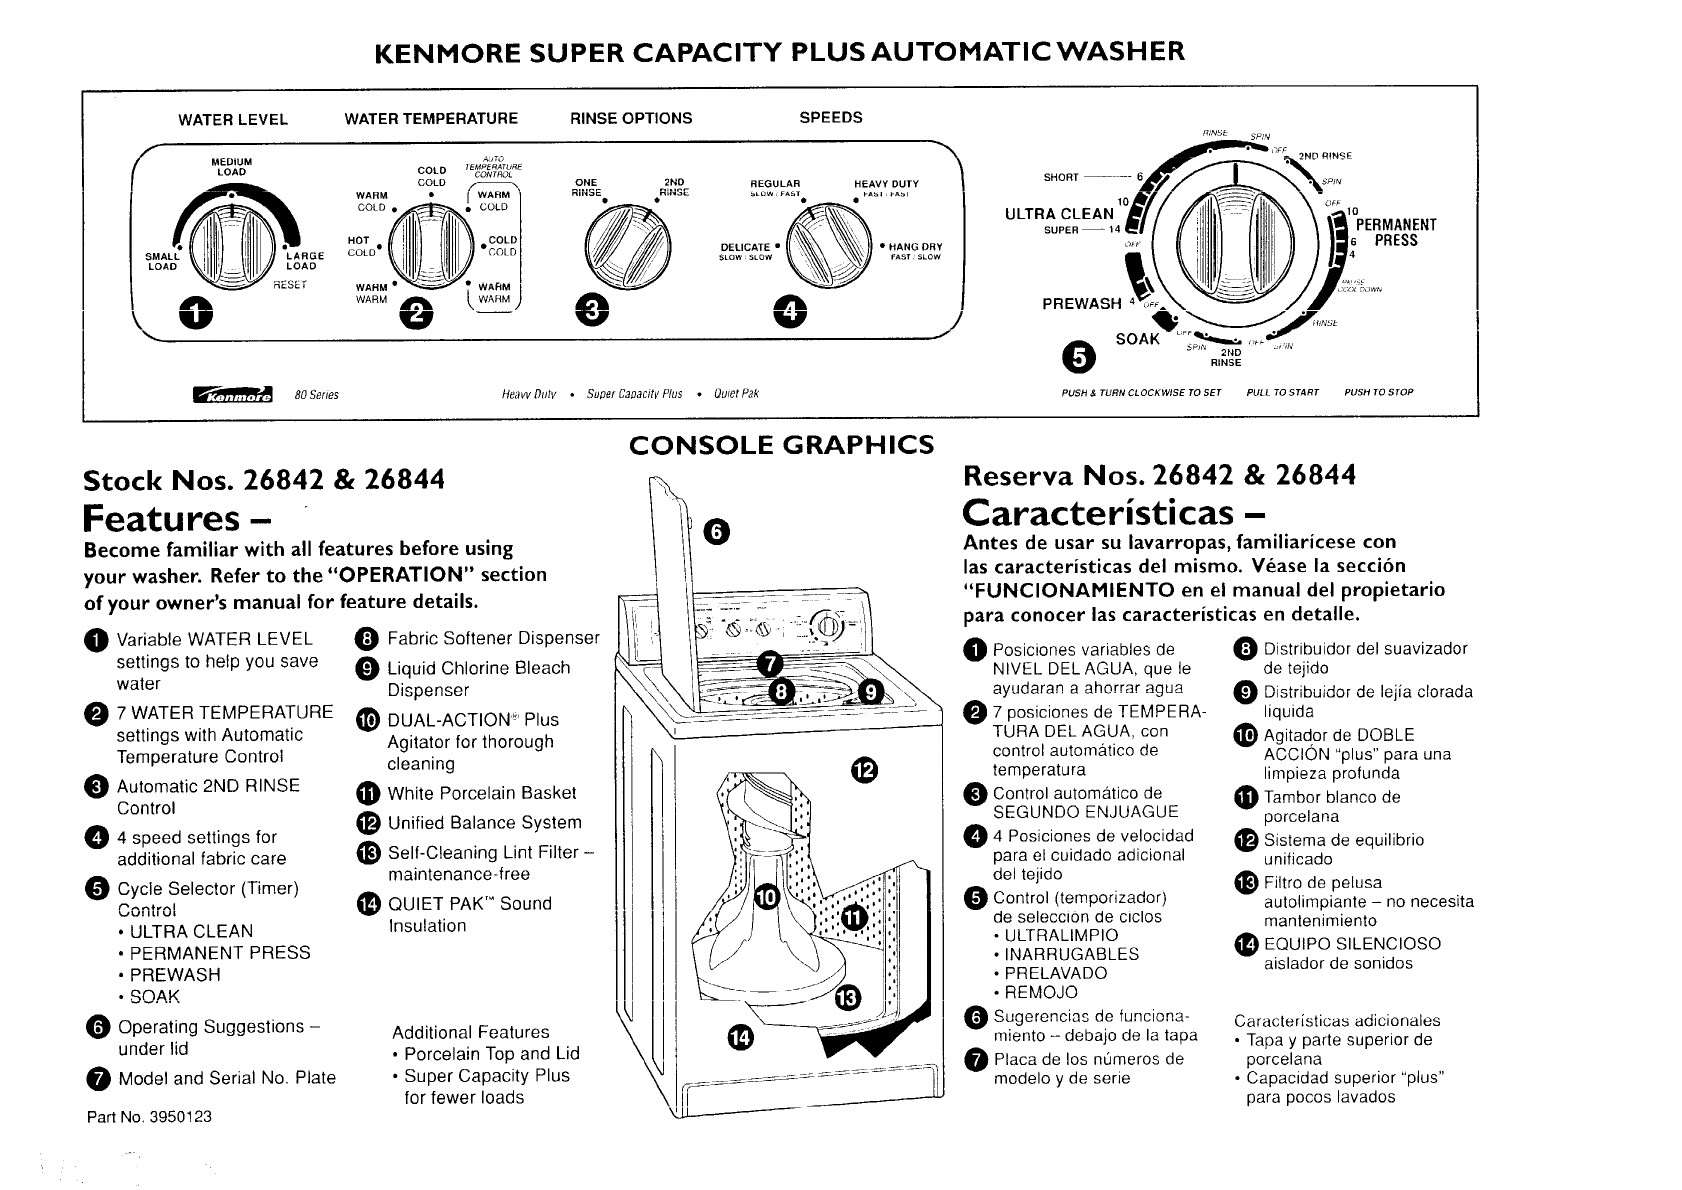 kenmore washer wiring diagram diagram collections wiring diagram with kenmore 80 series dryer parts diagram 80 series wiring diagram power wiring diagram \u2022 free wiring sears kenmore washer model 110 wiring diagram at arjmand.co